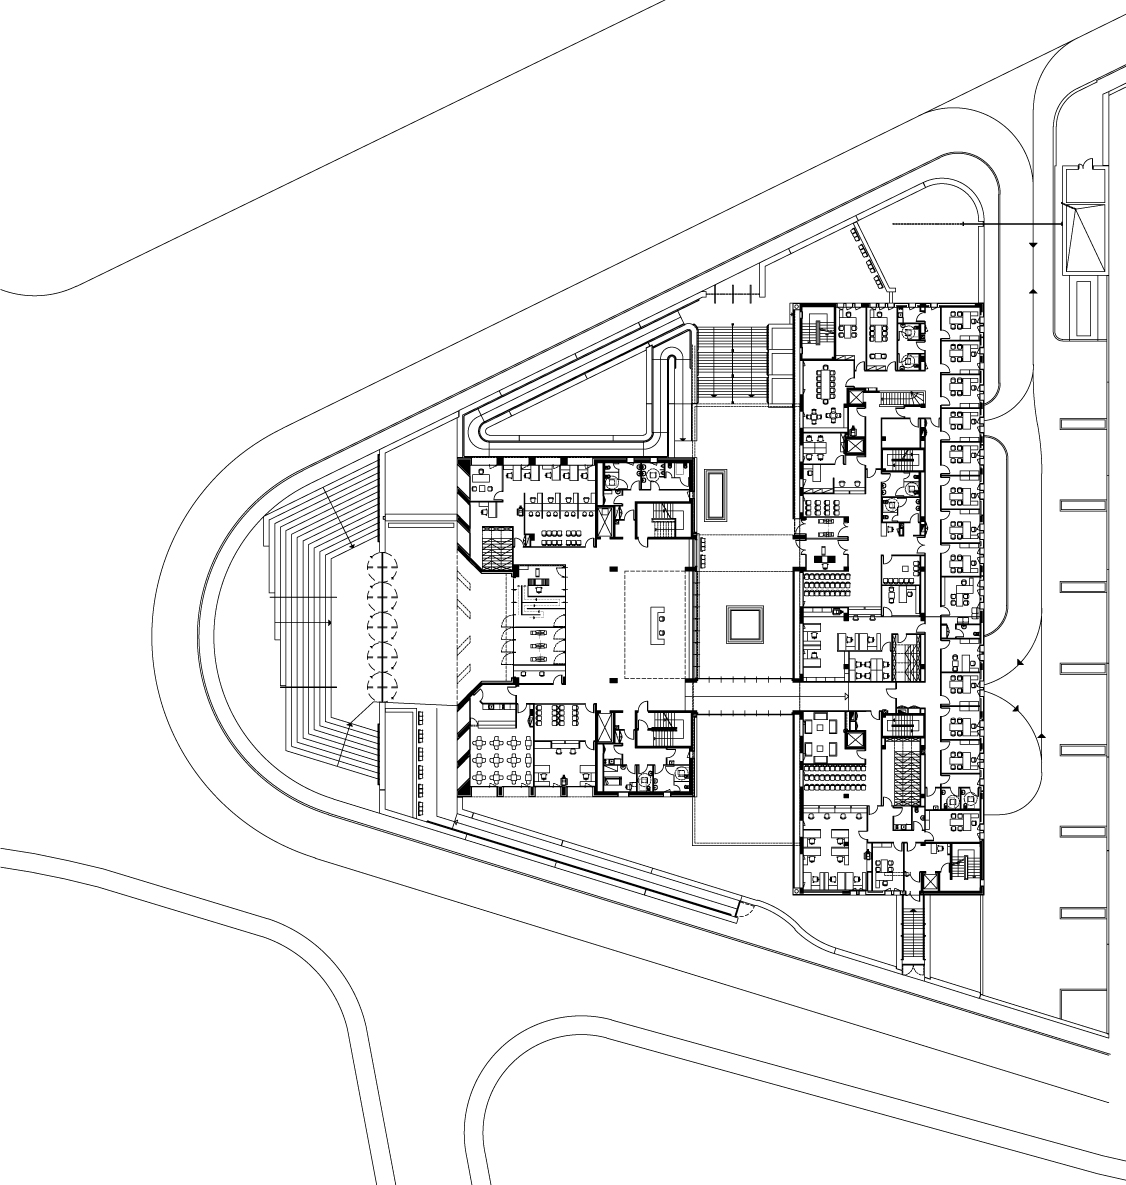 PRESSKIT_THE TOULKAREM COURTHOUSE-plan